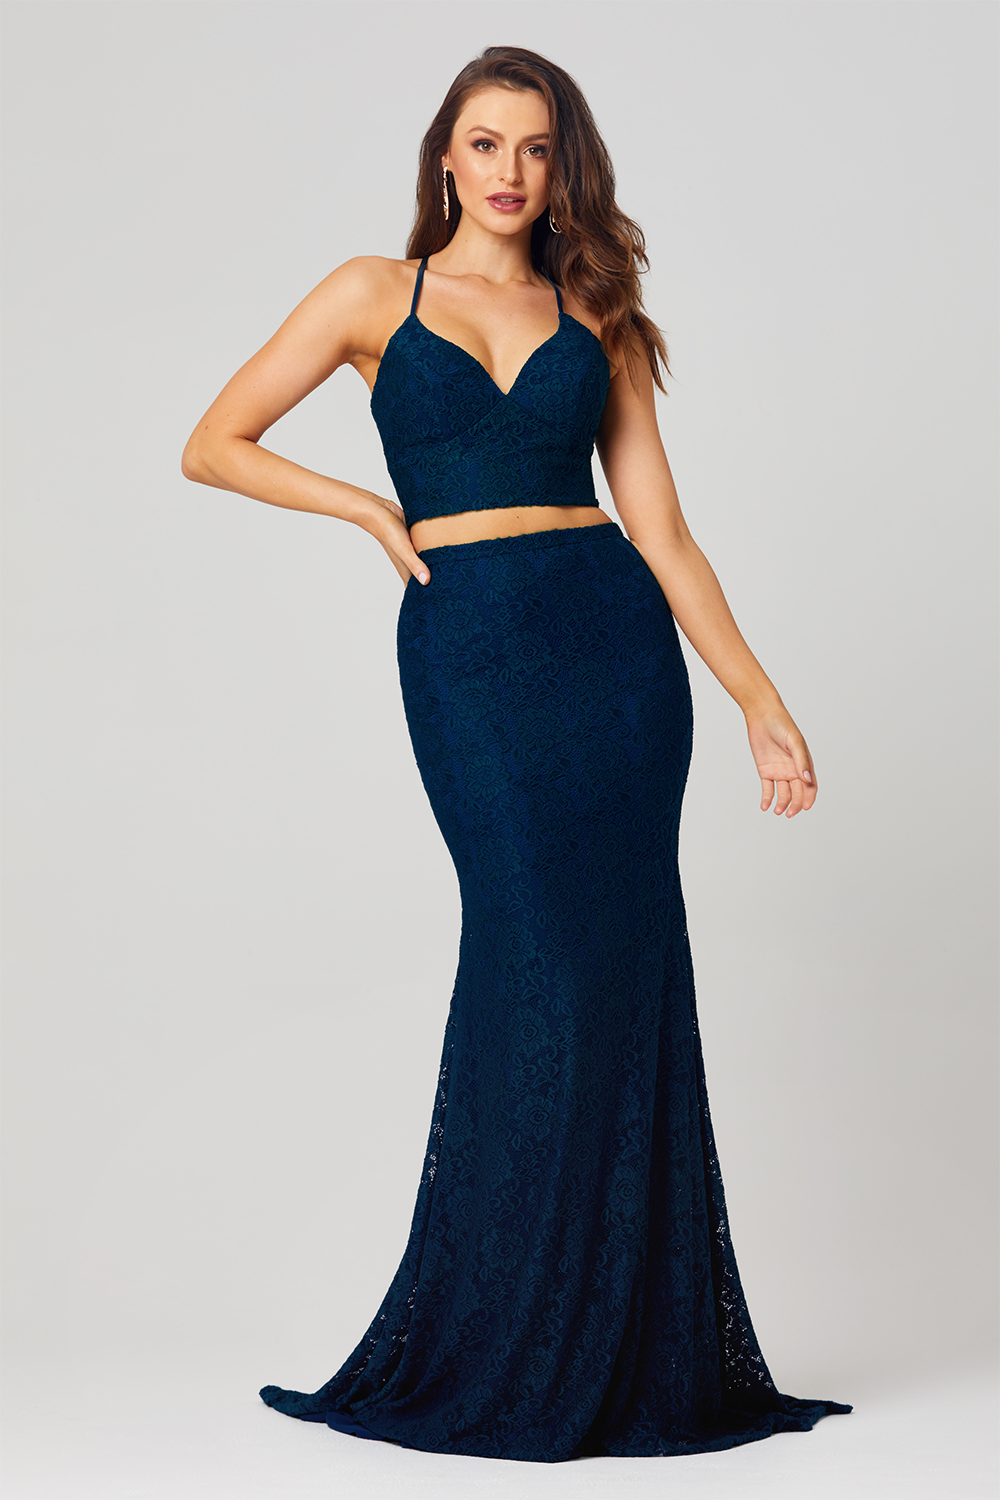 Gabbi Co-Ord Lace Formal Dress – PO813 Navy